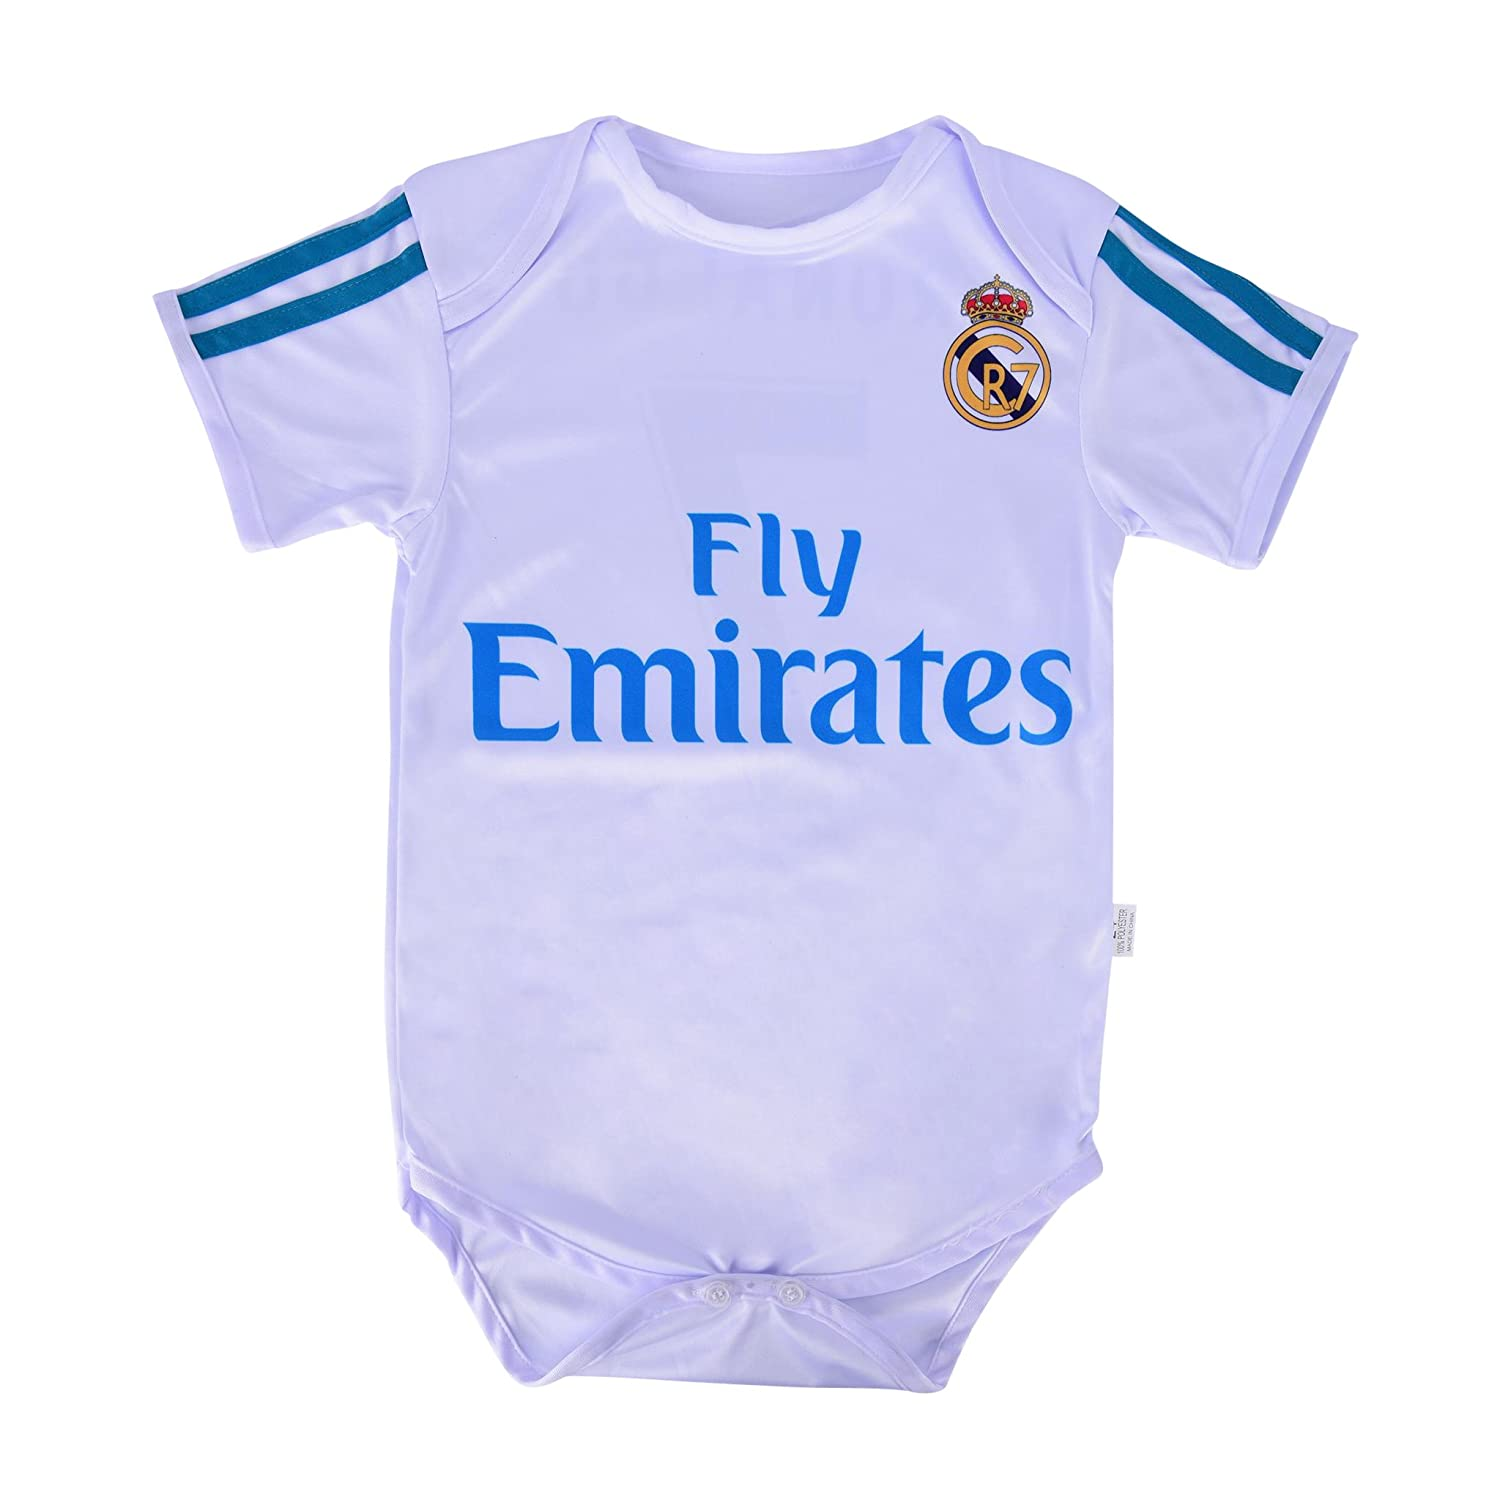 3a33d221c9ace Amazon.com   World Cup Baby Cristiano Ronaldo  7 Real Madrid Soccer Jersey Baby  Infant and Toddler Onesie Romper Premium Quality - Home and Away PACK OF 2  ...